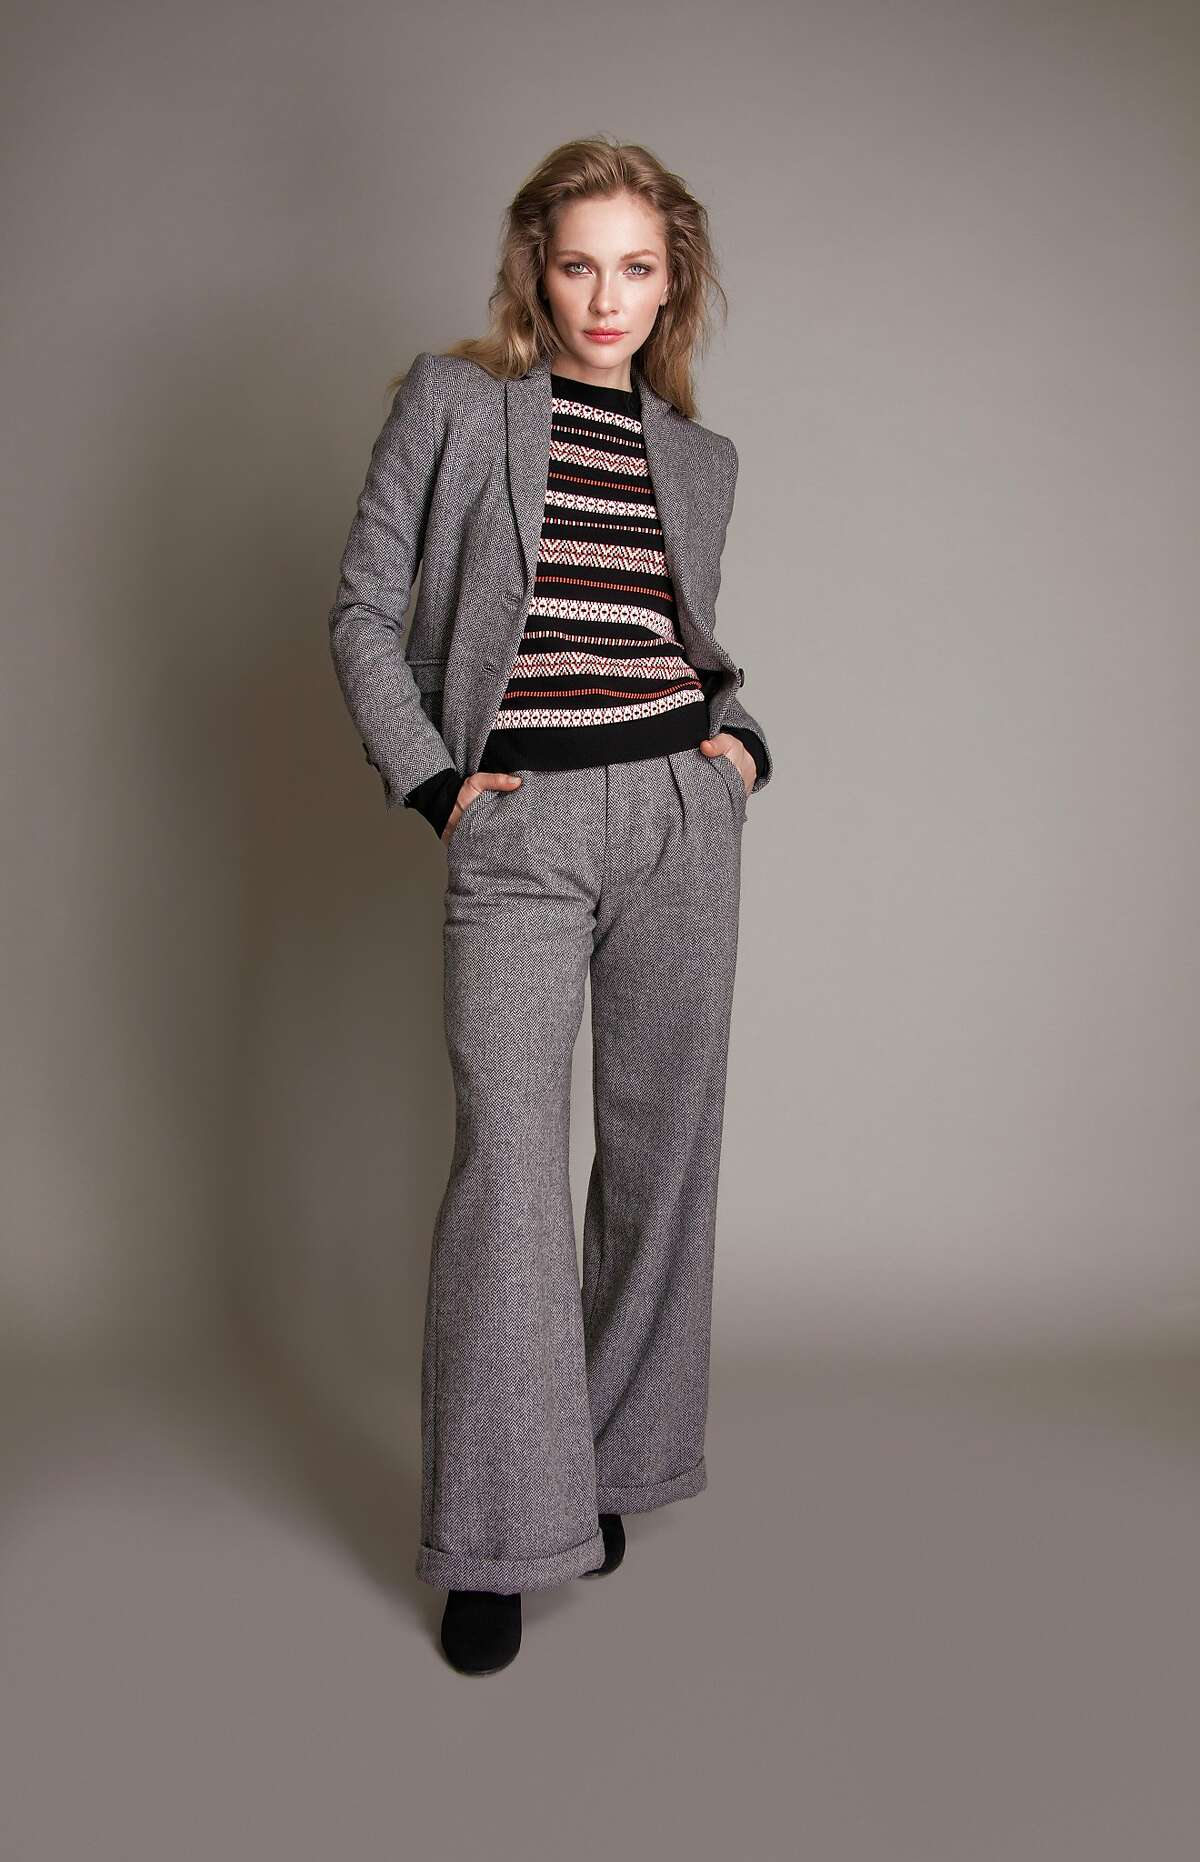 The Amanda herringbone jacket �embodies Old World charm with a modern and wearable aesthetic,� says the fashion label�s namesake, Jessie Liu. The luxe wool allows for �great recovery, fabric weight and fiber retention�all of which aid in keeping both the integrity and shape of the blazer consistent.�